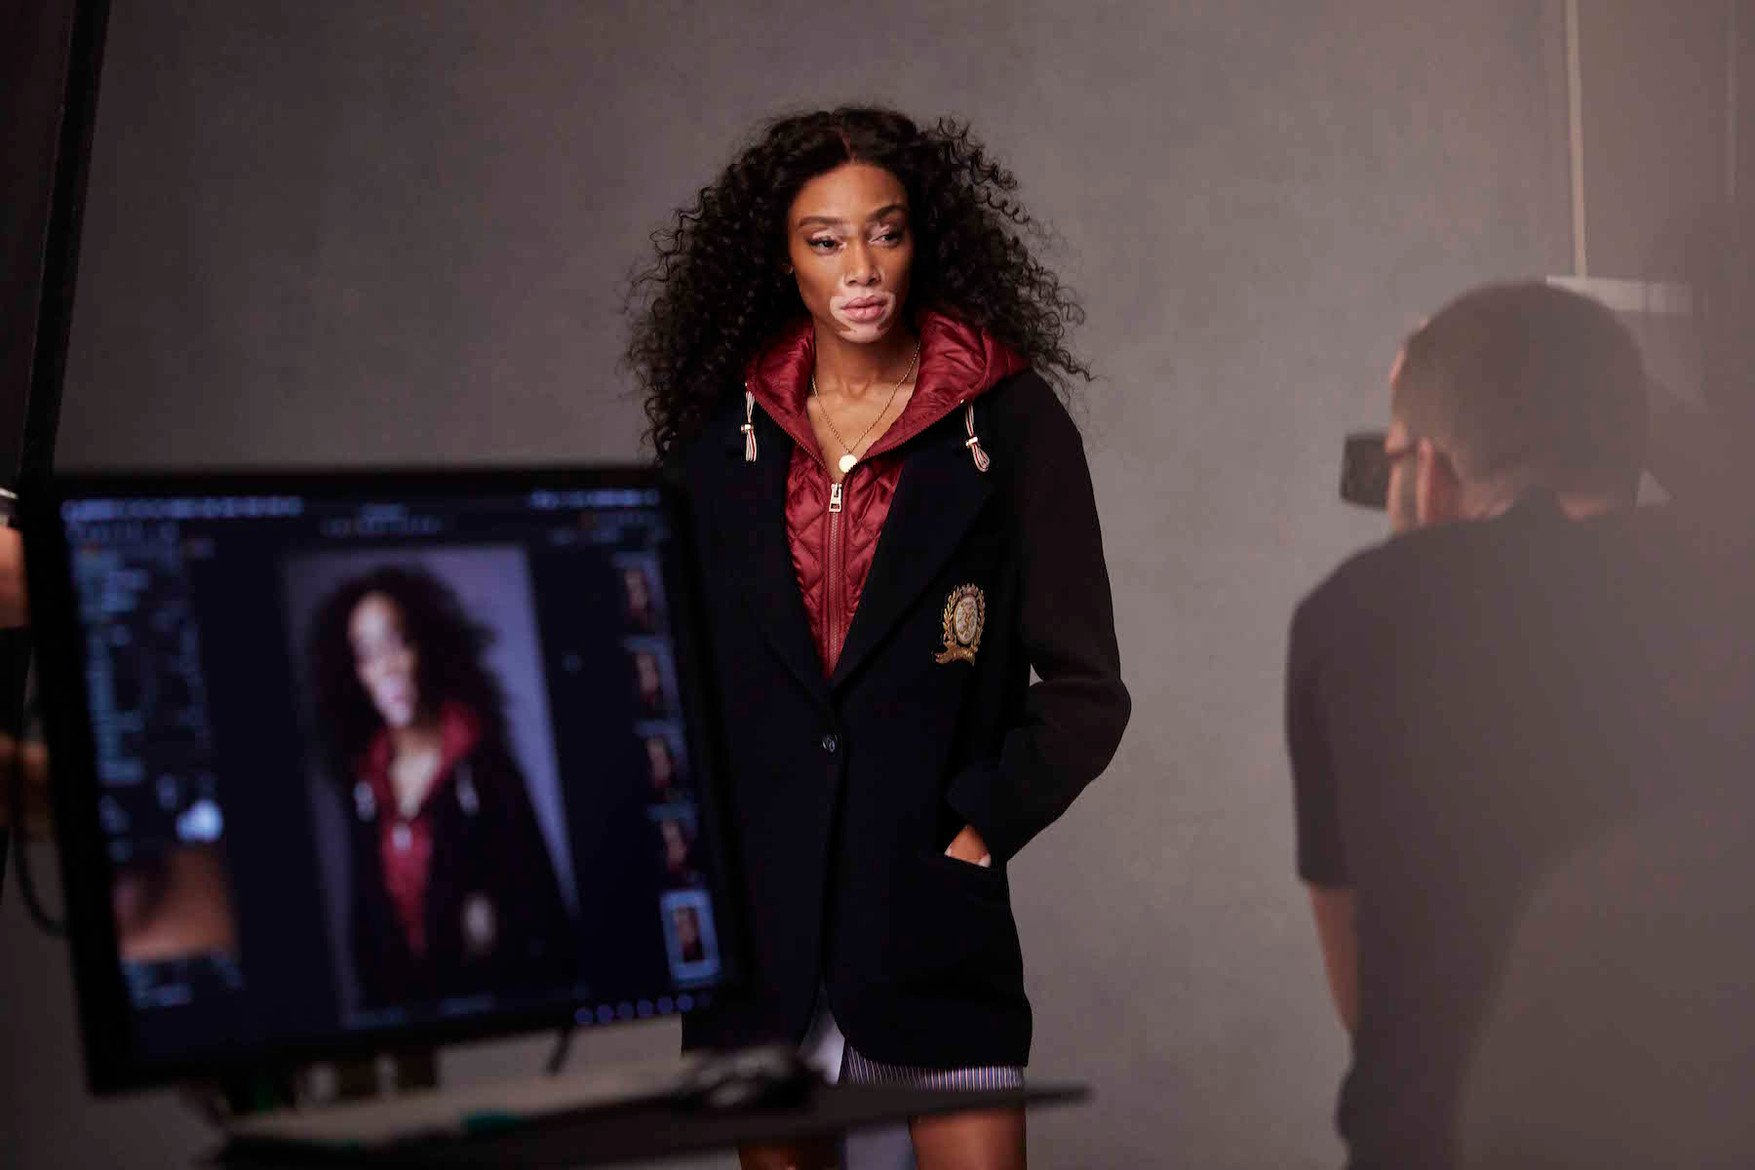 Hailey Baldwin Winnie Harlow for Tommy Hilfiger